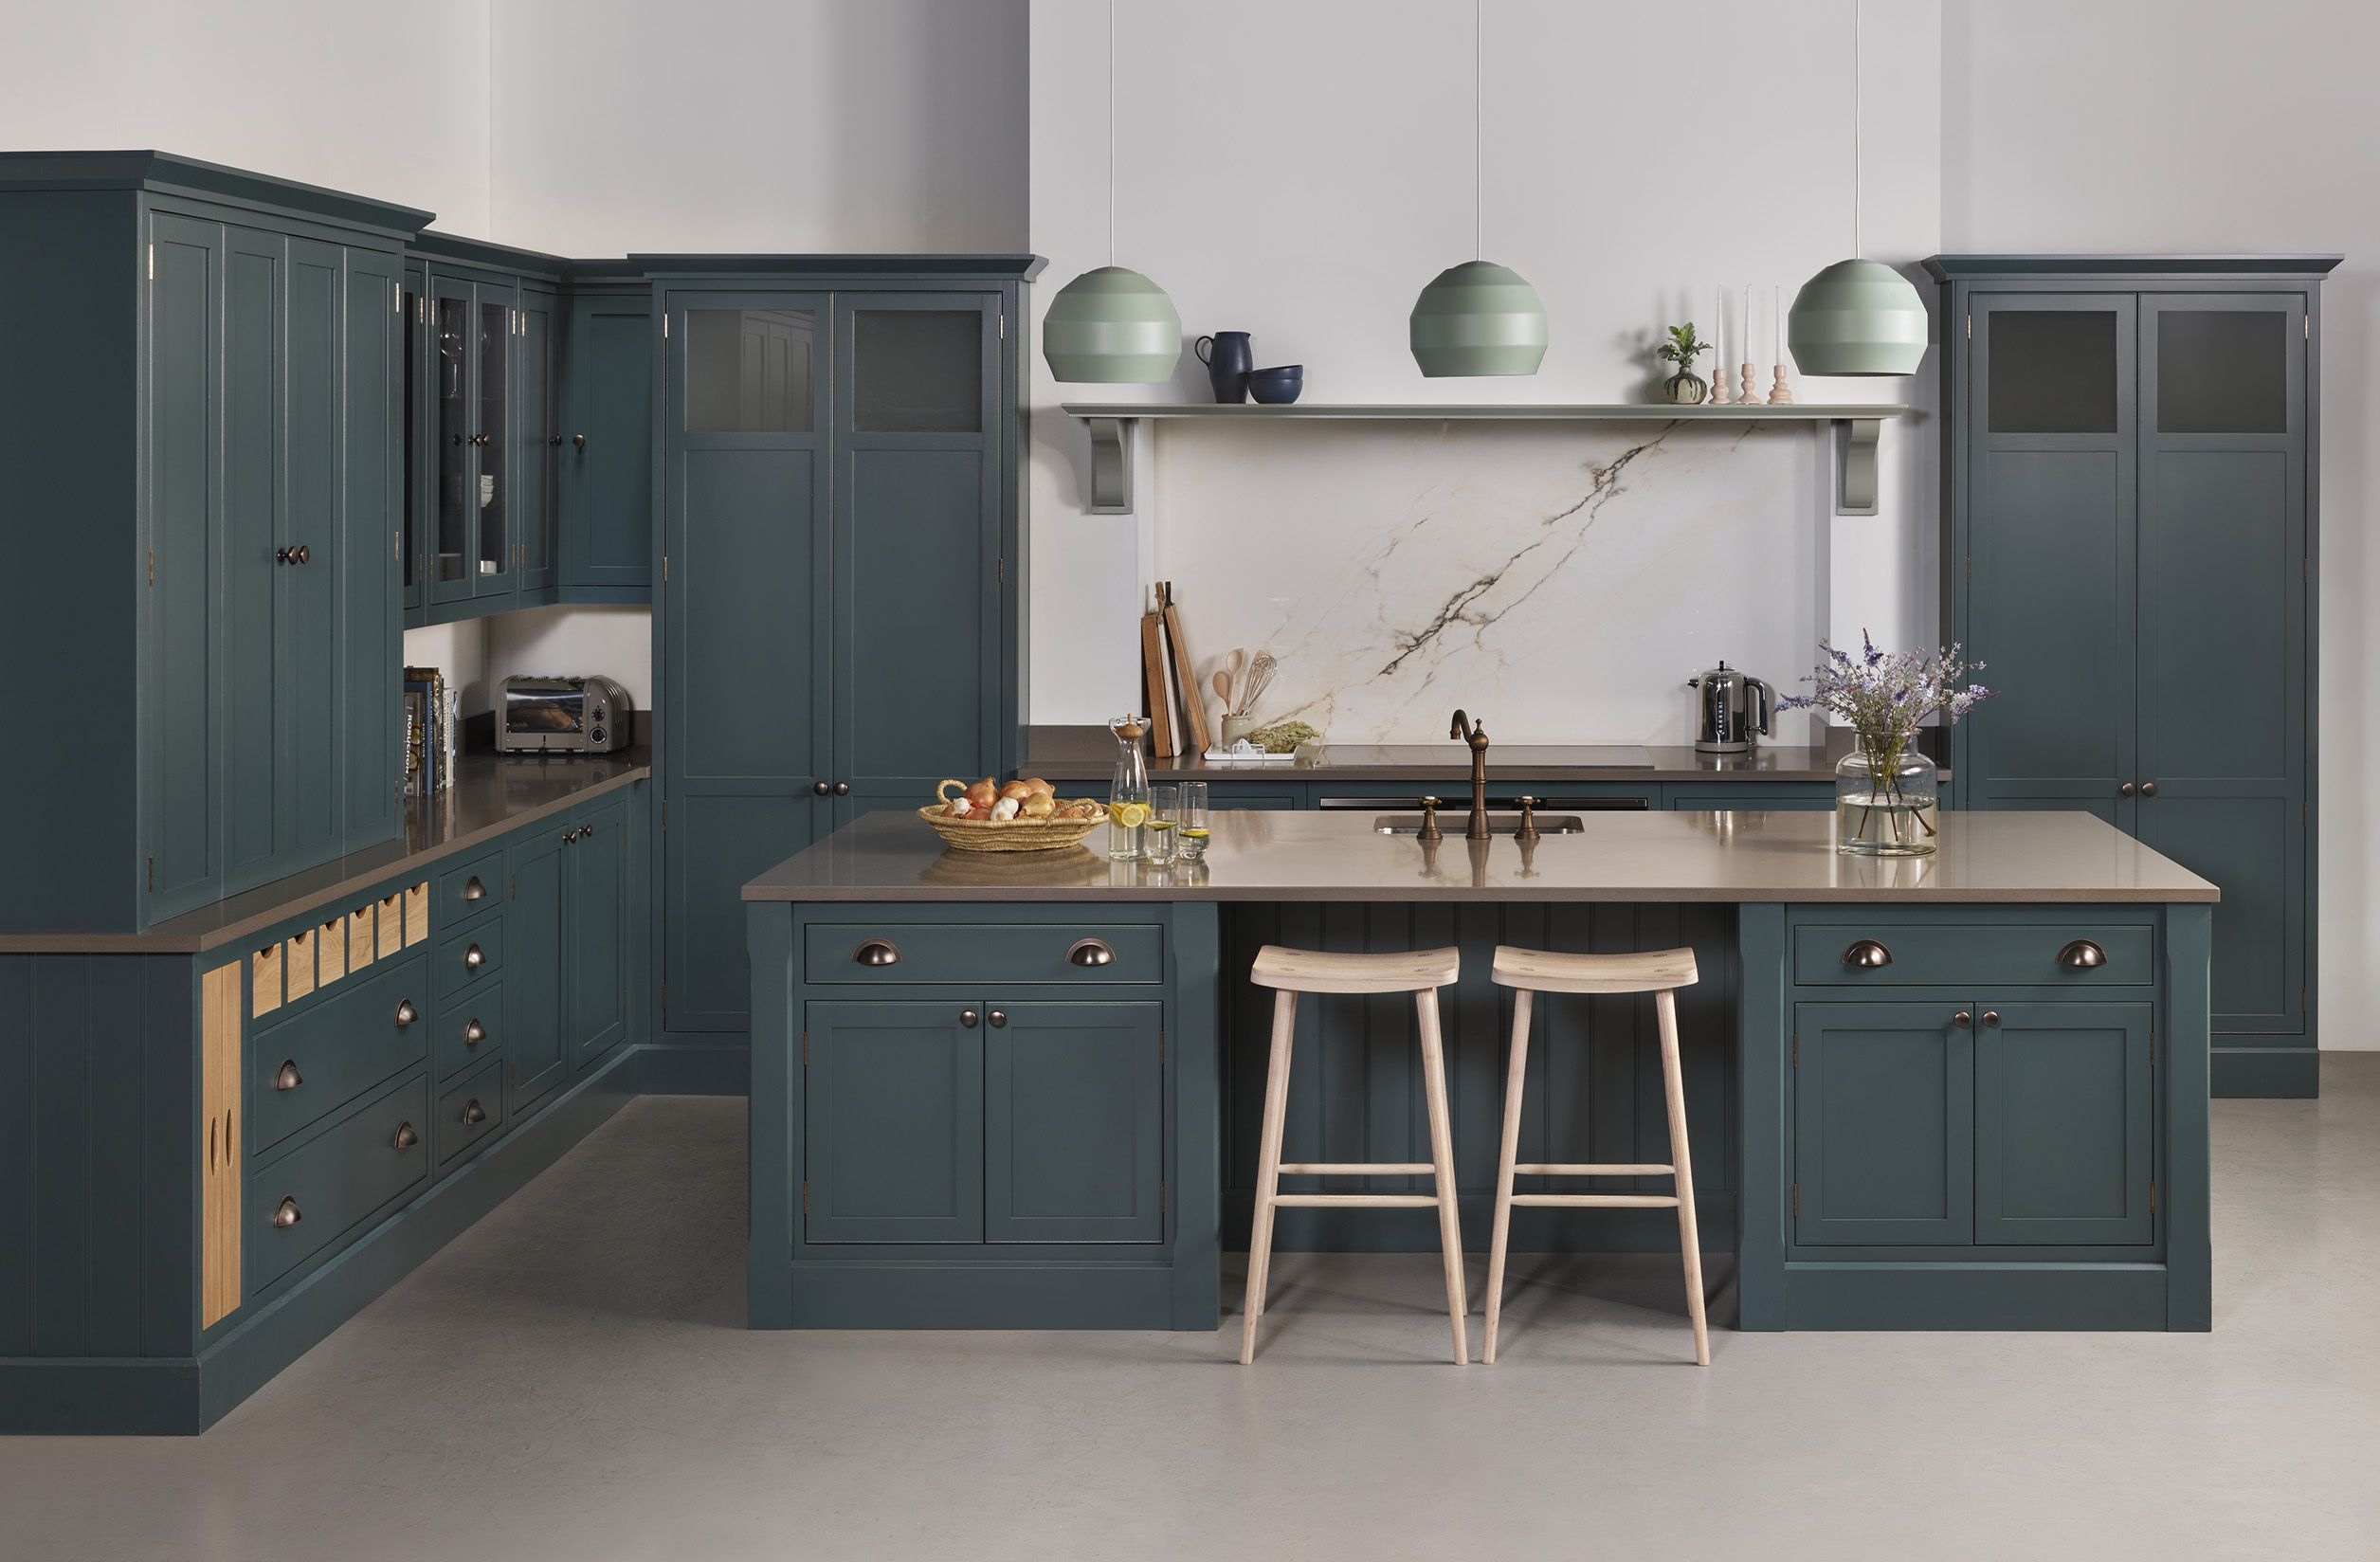 Best Introducing Arbor Our New And Exclusive Kitchen Range 400 x 300